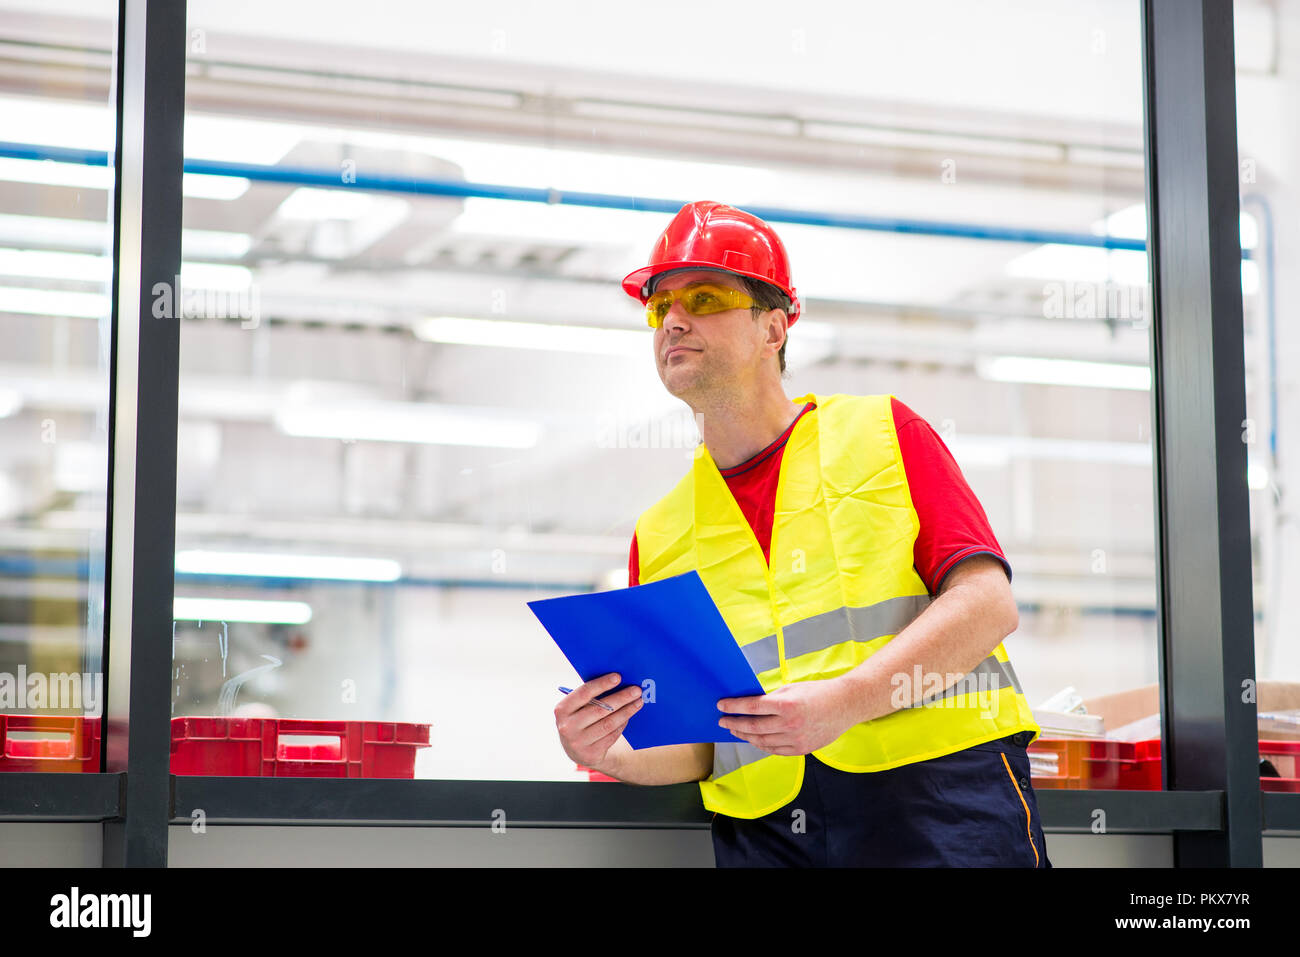 Factory supervisor in yellow reflective west with red helmet. Factory engineer holding blue folder with documents - Stock Image